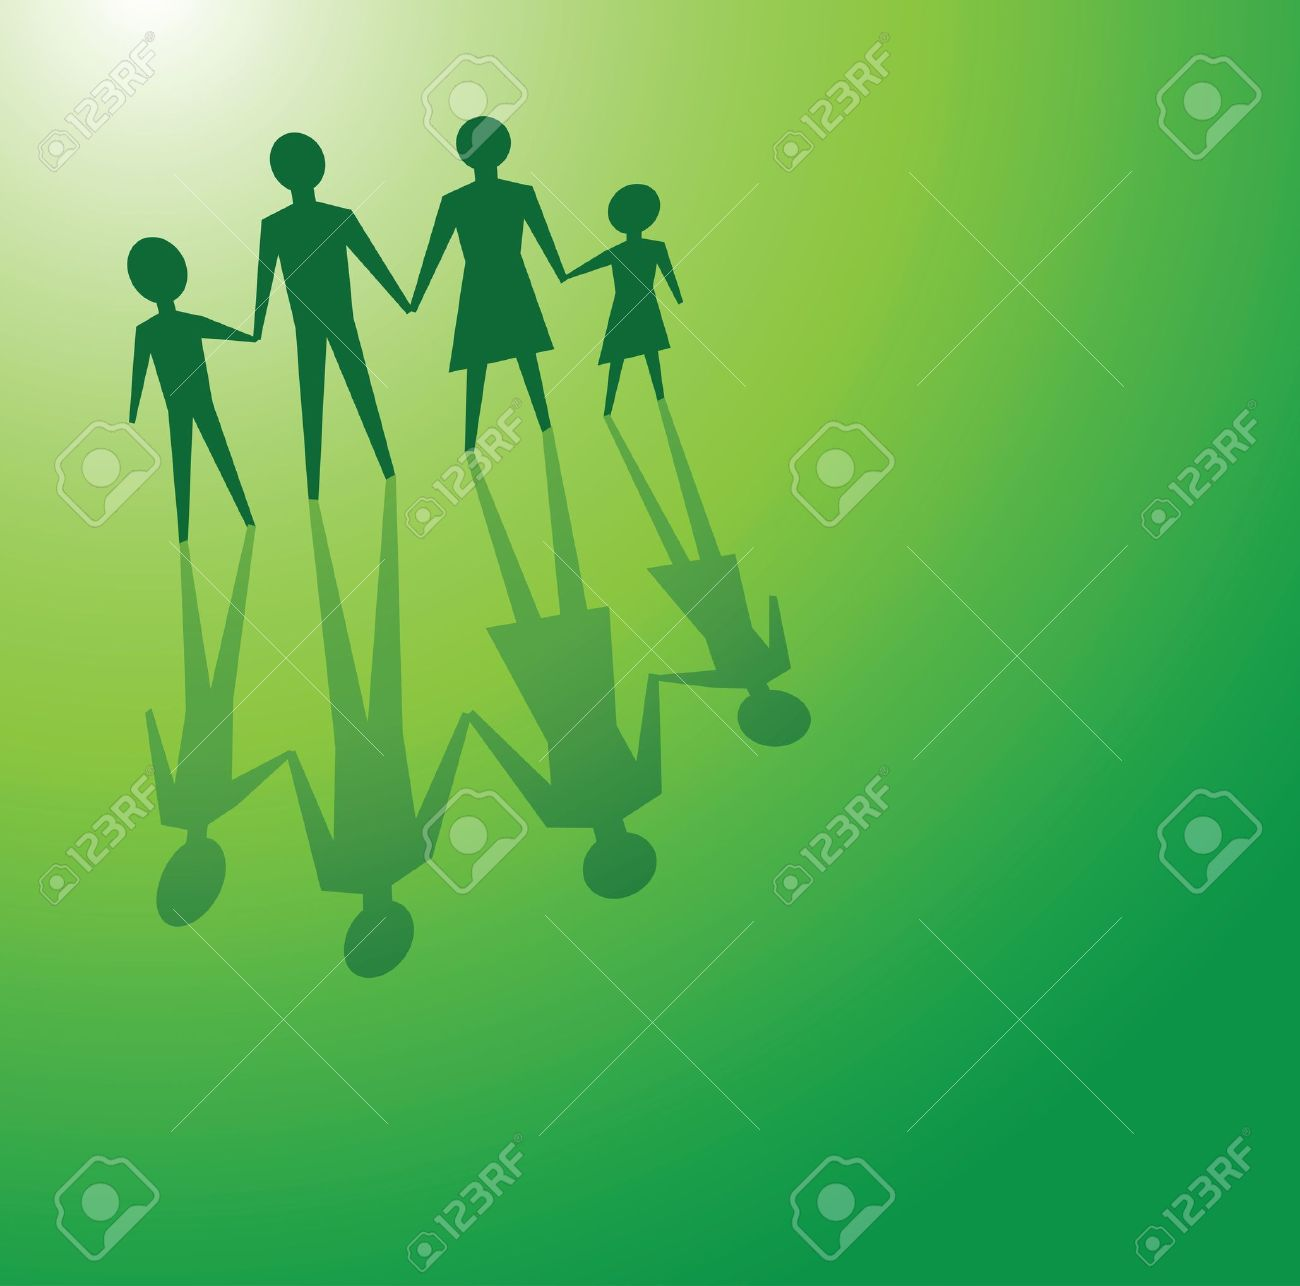 to illustrations a family in a green background, for environmental concepts. Stock Vector - 11822921